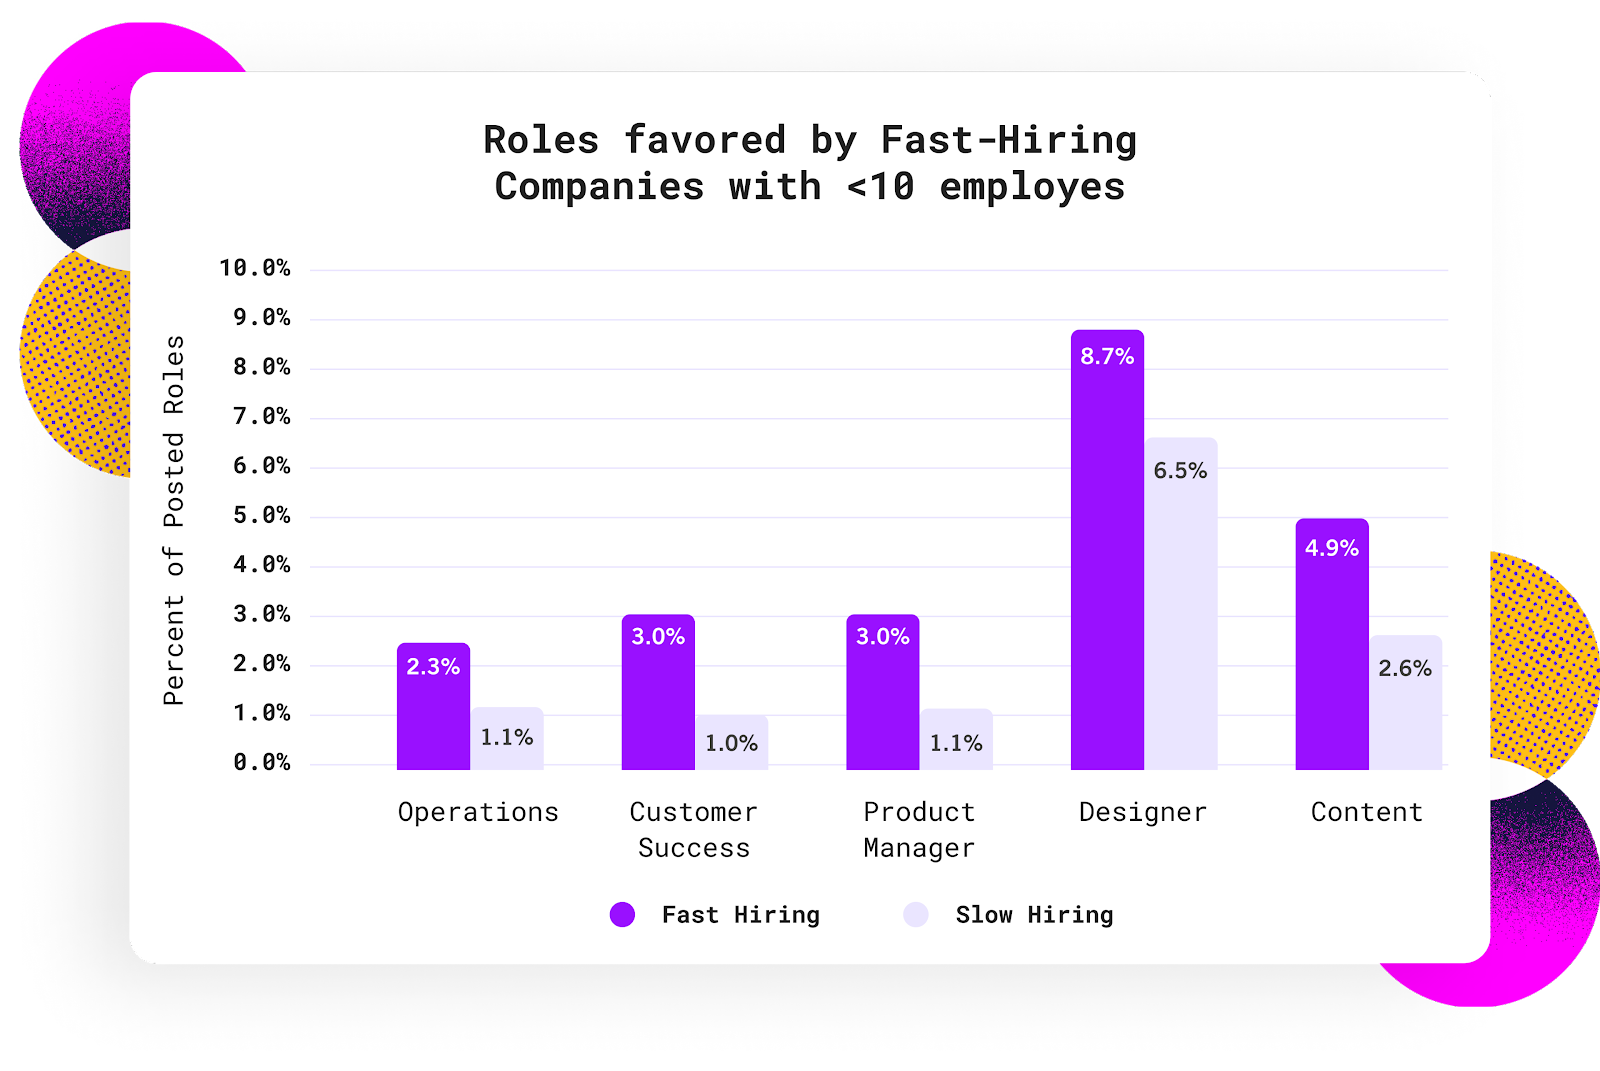 roles favored by fast-hiring companies with <10 employees bar chart